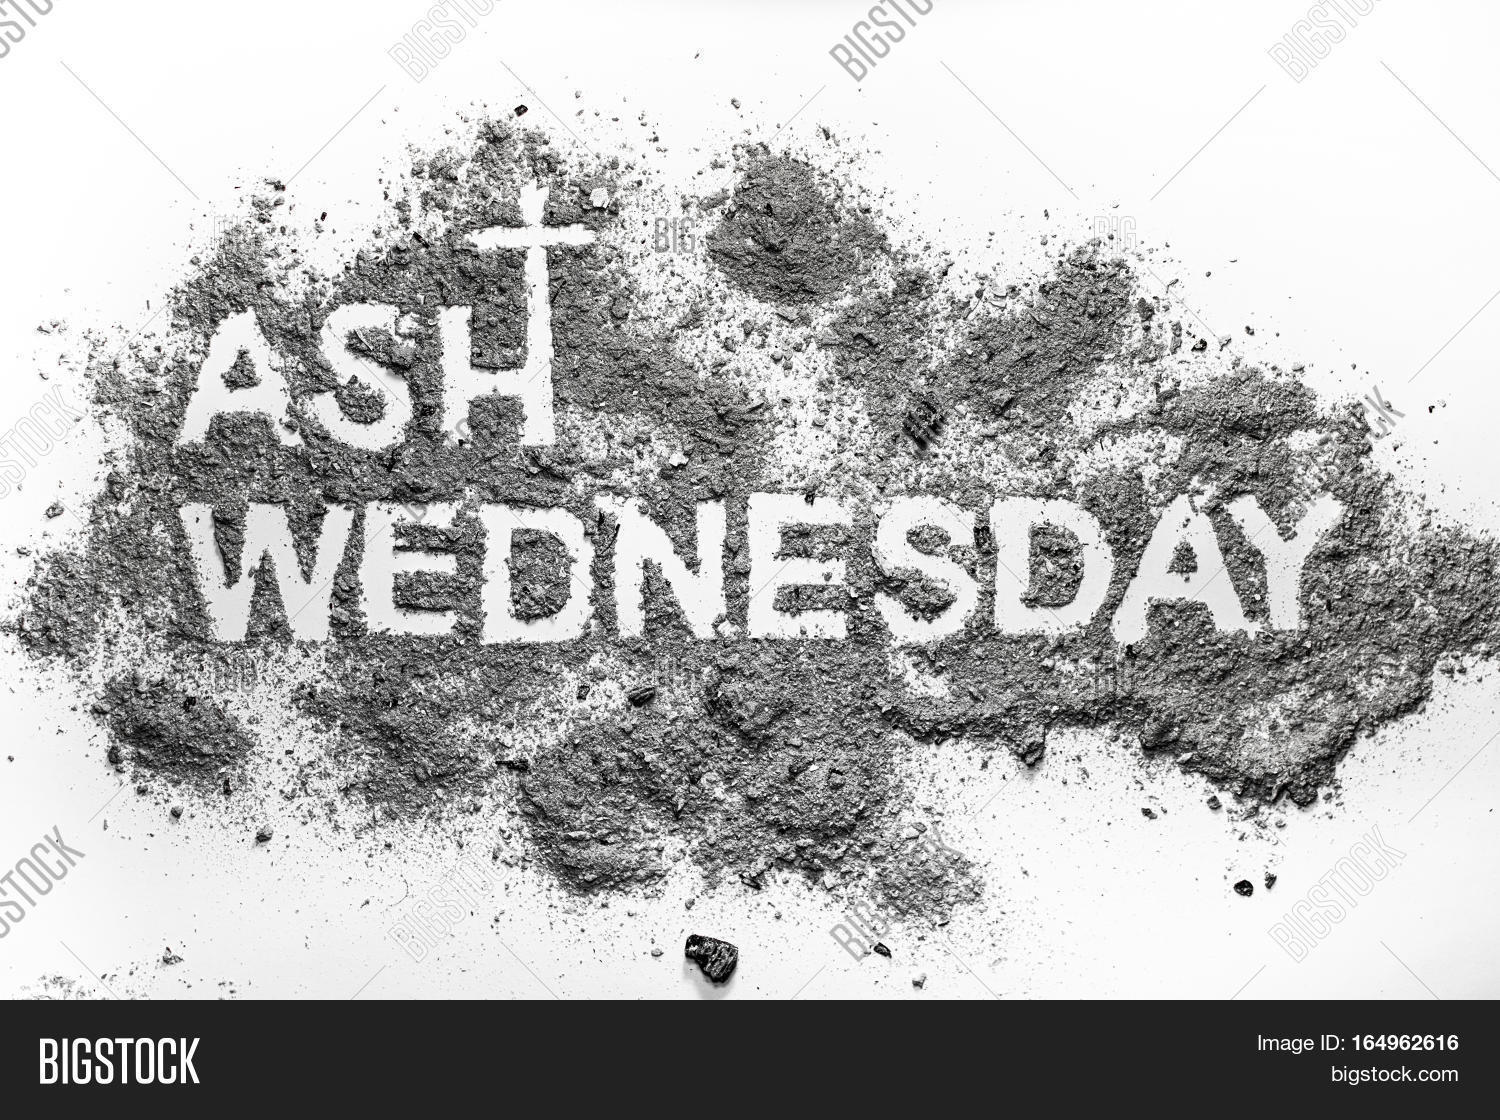 ash wednesday word image photo free trial bigstock